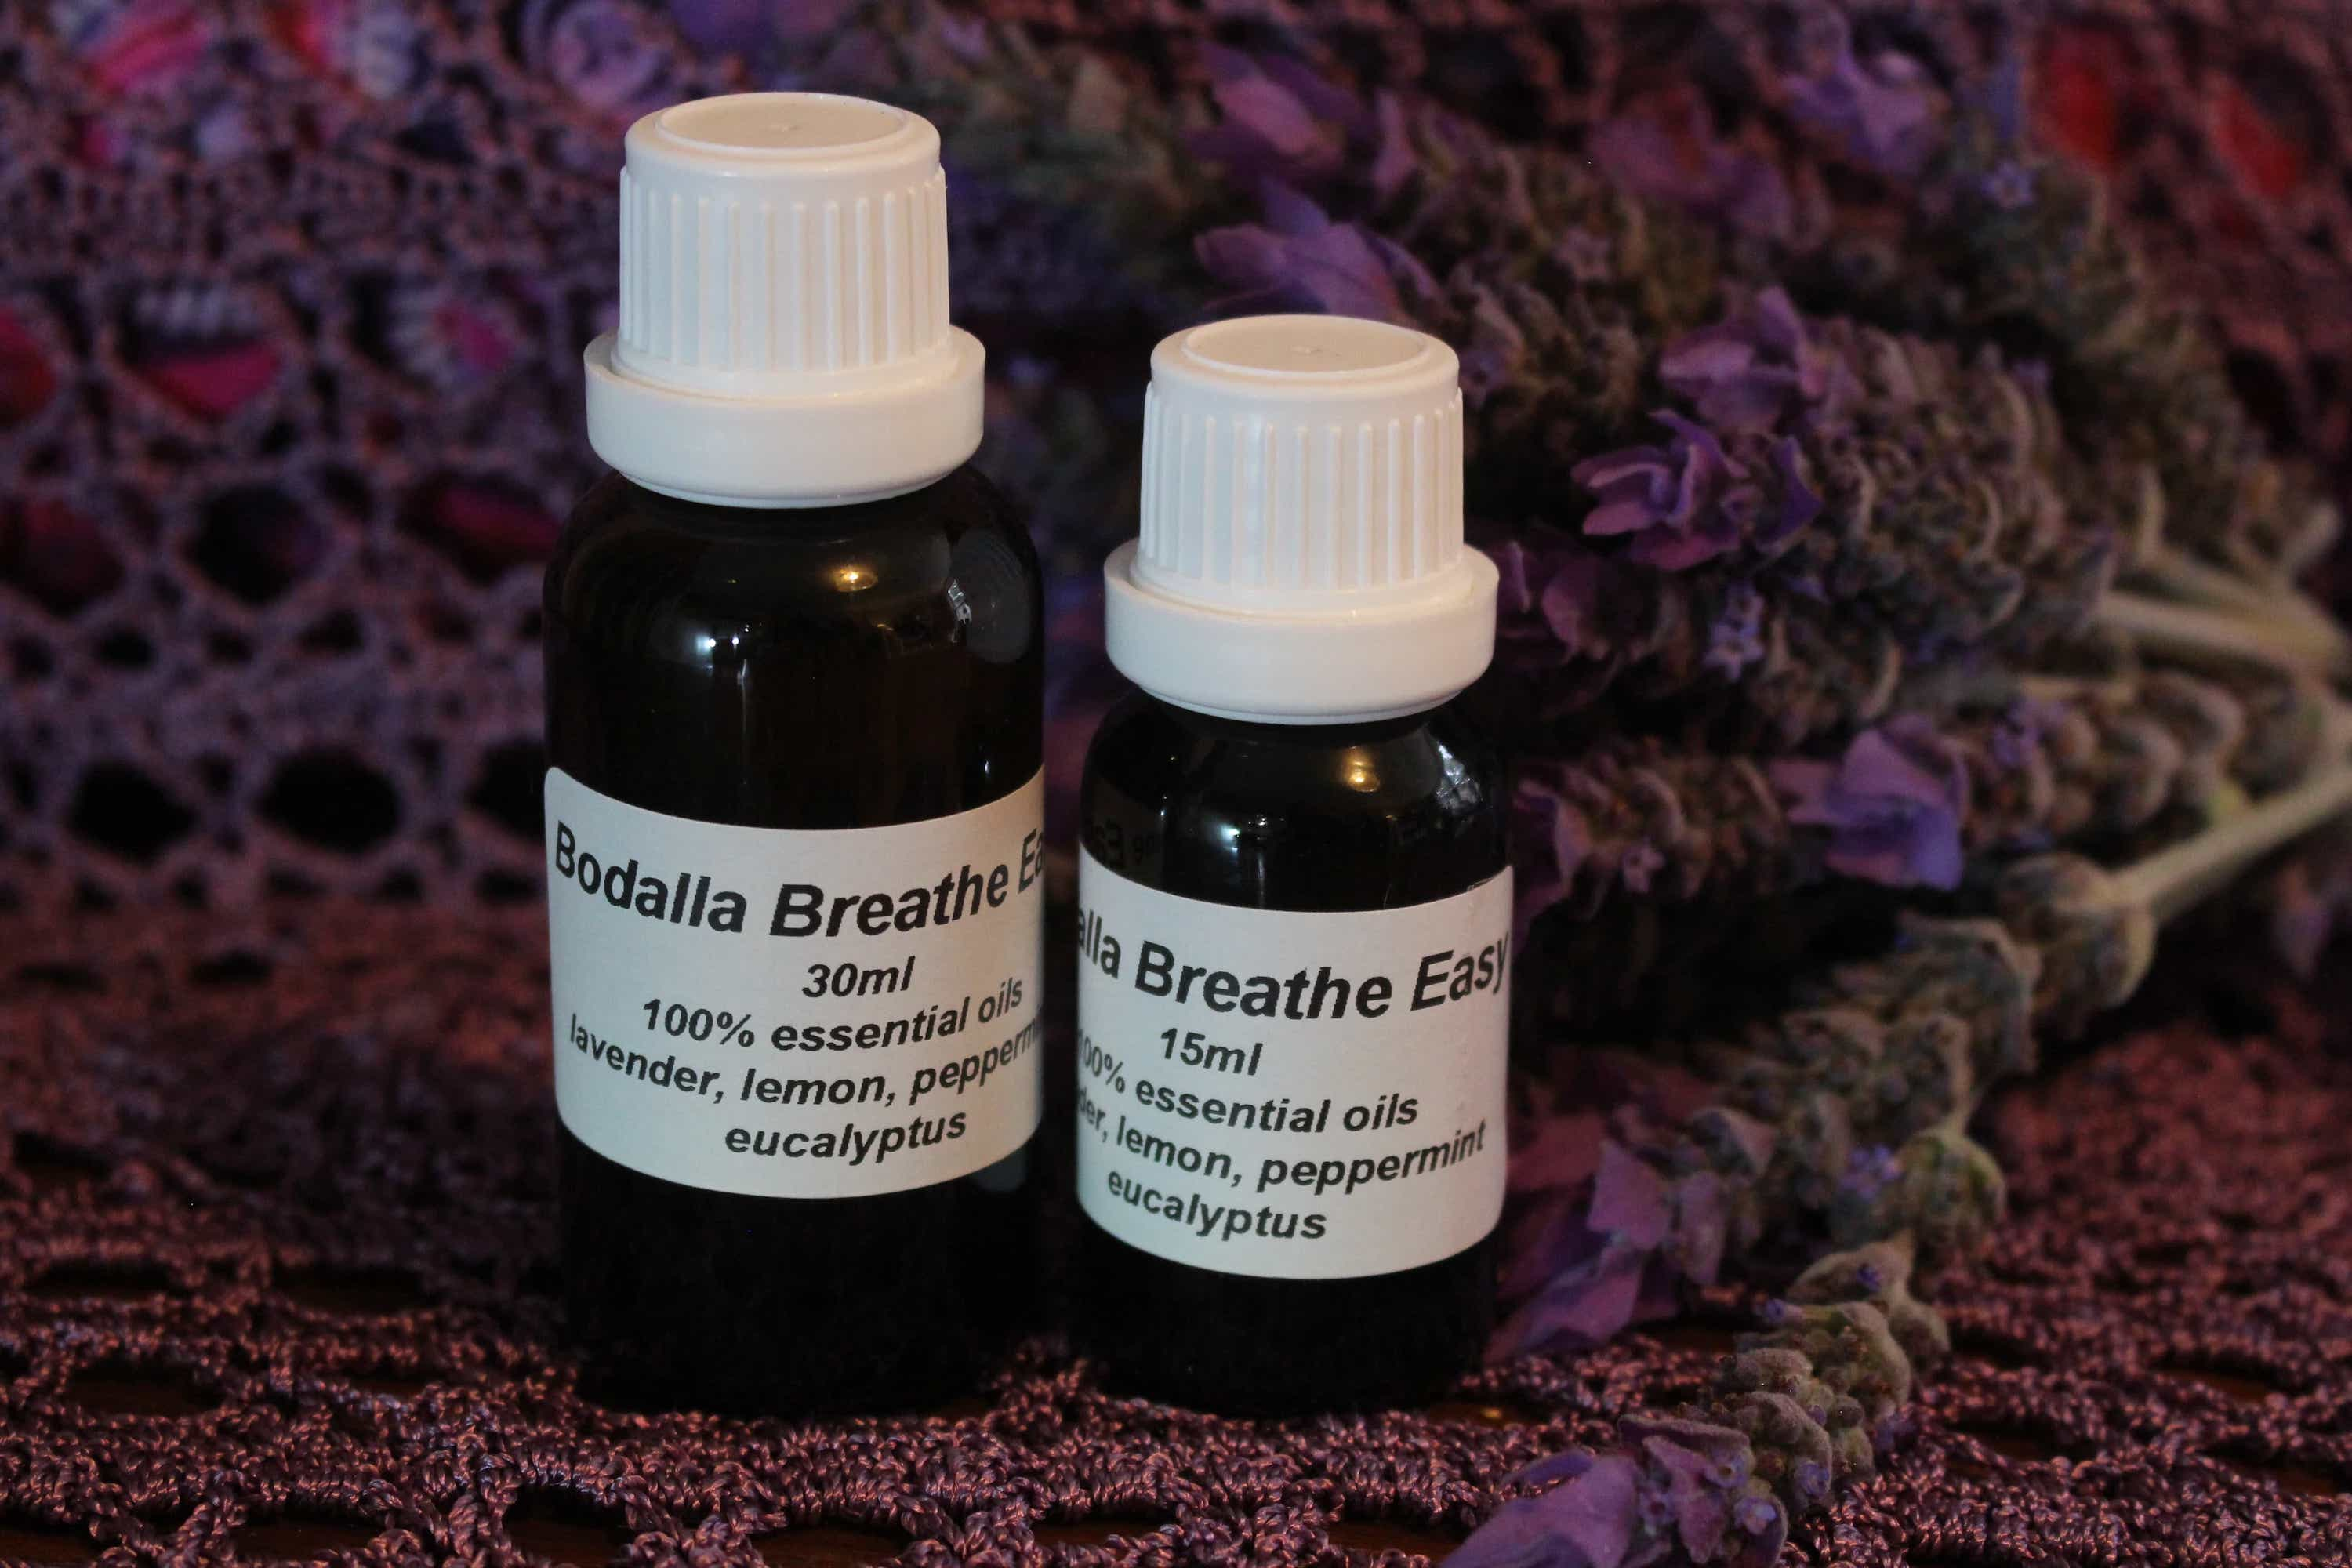 Photograph of an Bodalla Breathe Easy 15ml product